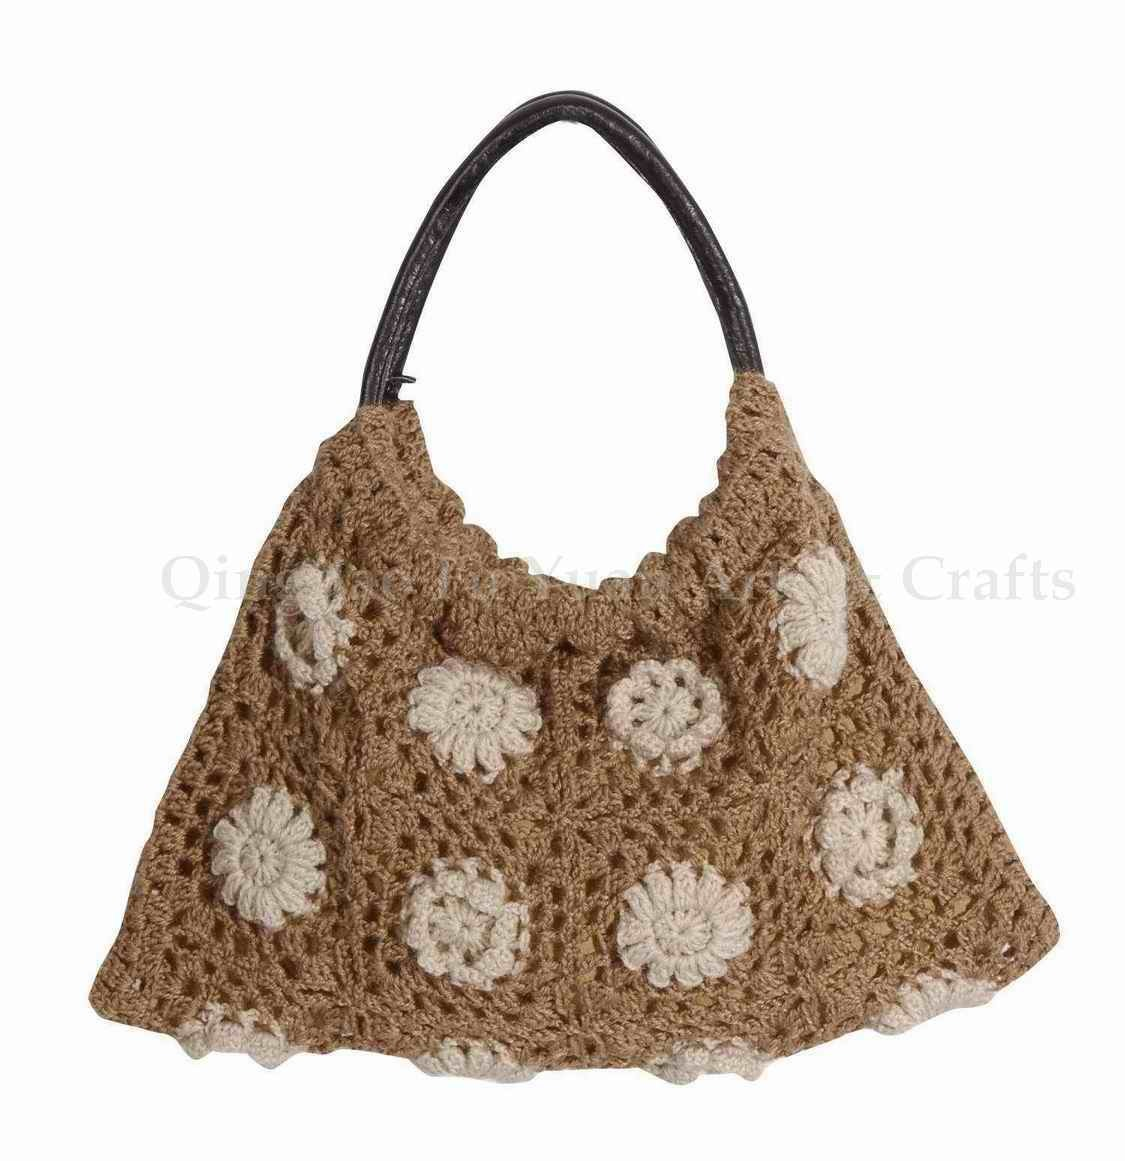 Crochet Bags Video : China Crochet Bag (FY8020) - China Knitting Bag, Knitted Bag